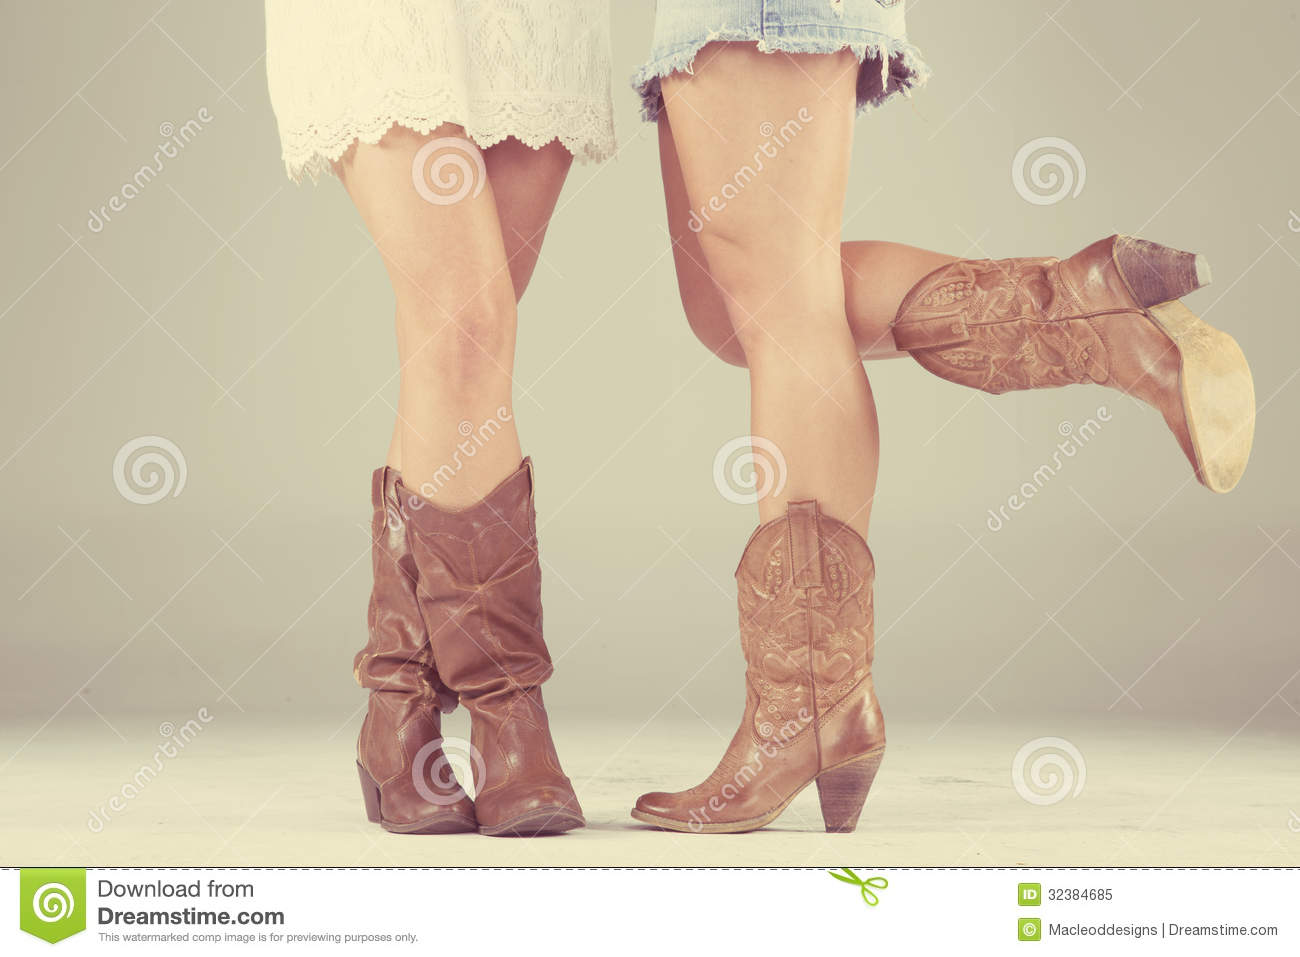 Women with cowboy boots